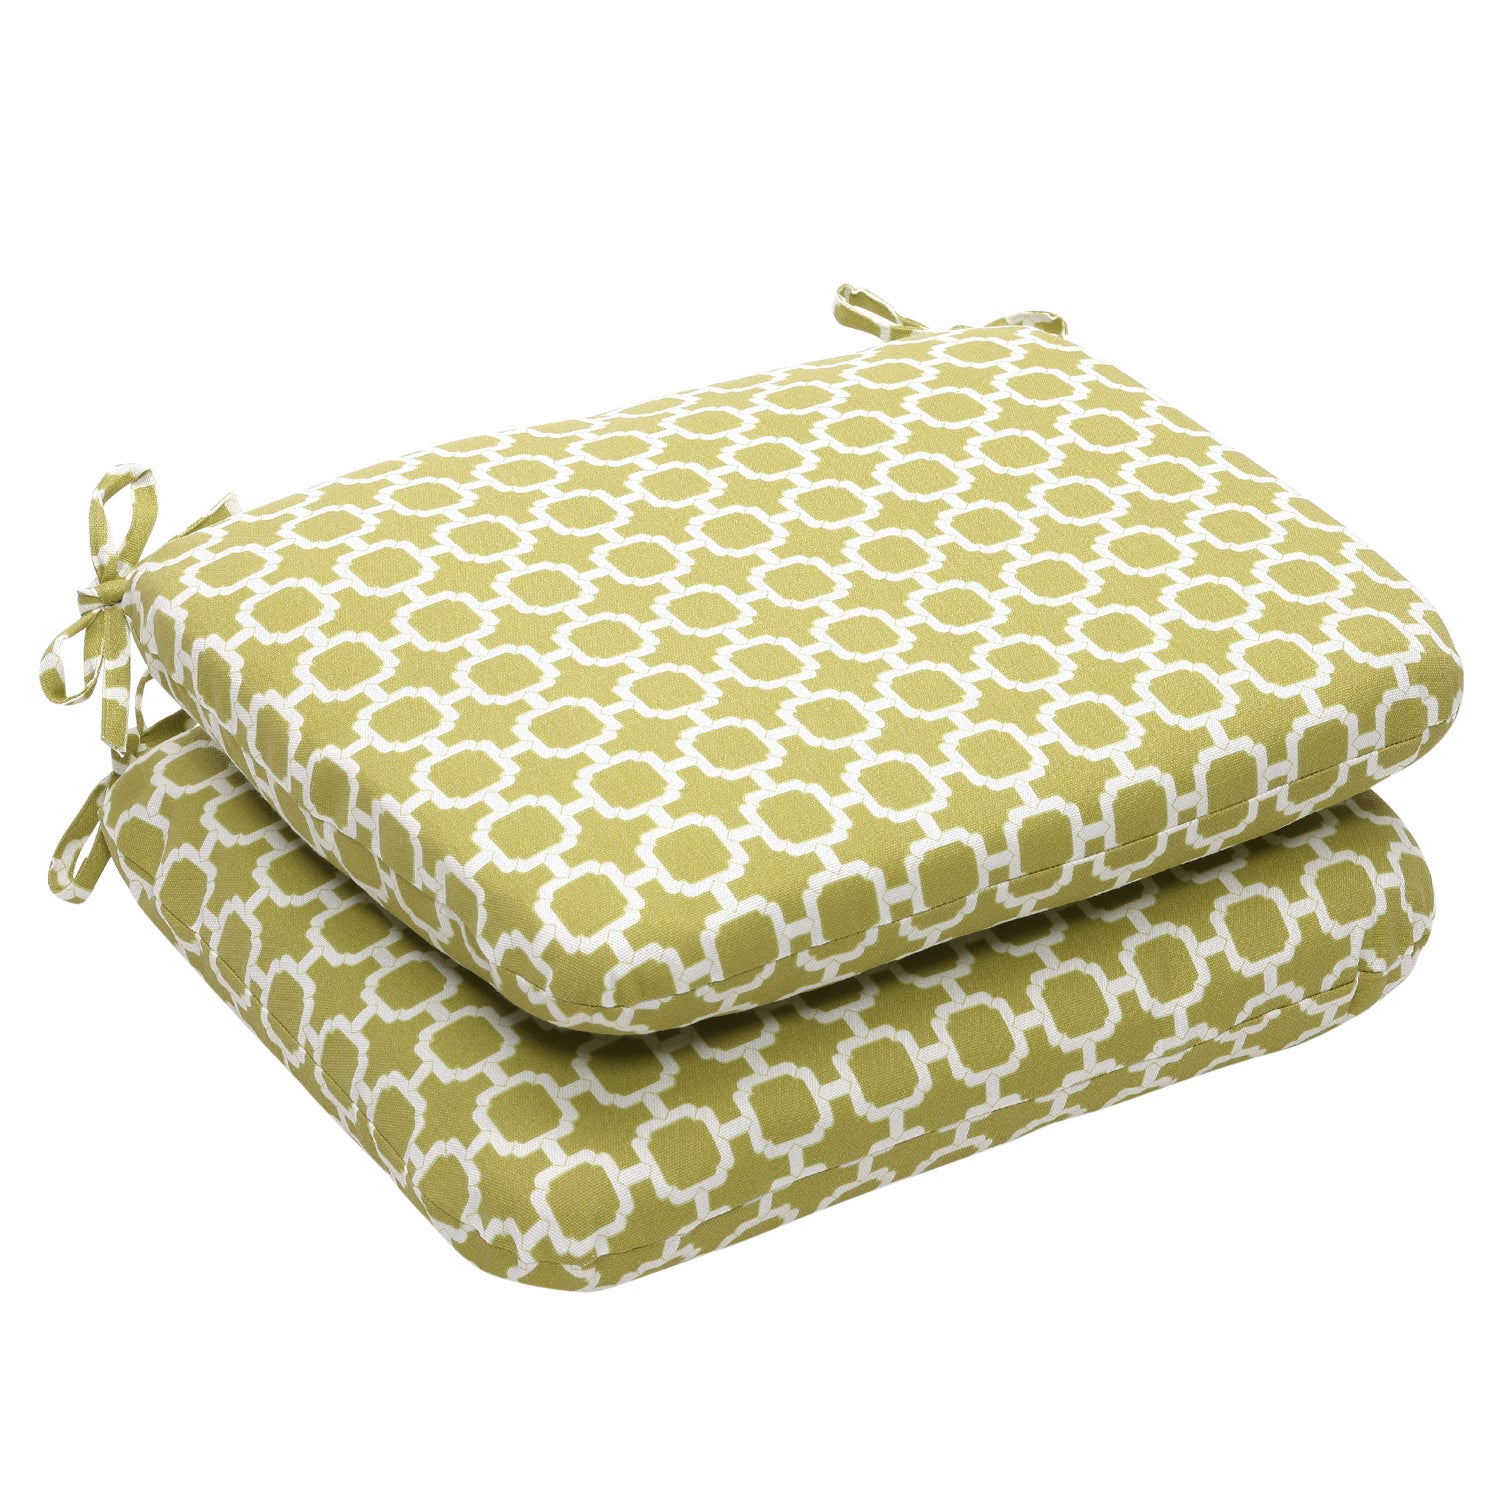 Outdoor Green and White Geometric Rounded Seat Cushion (Set of 2)